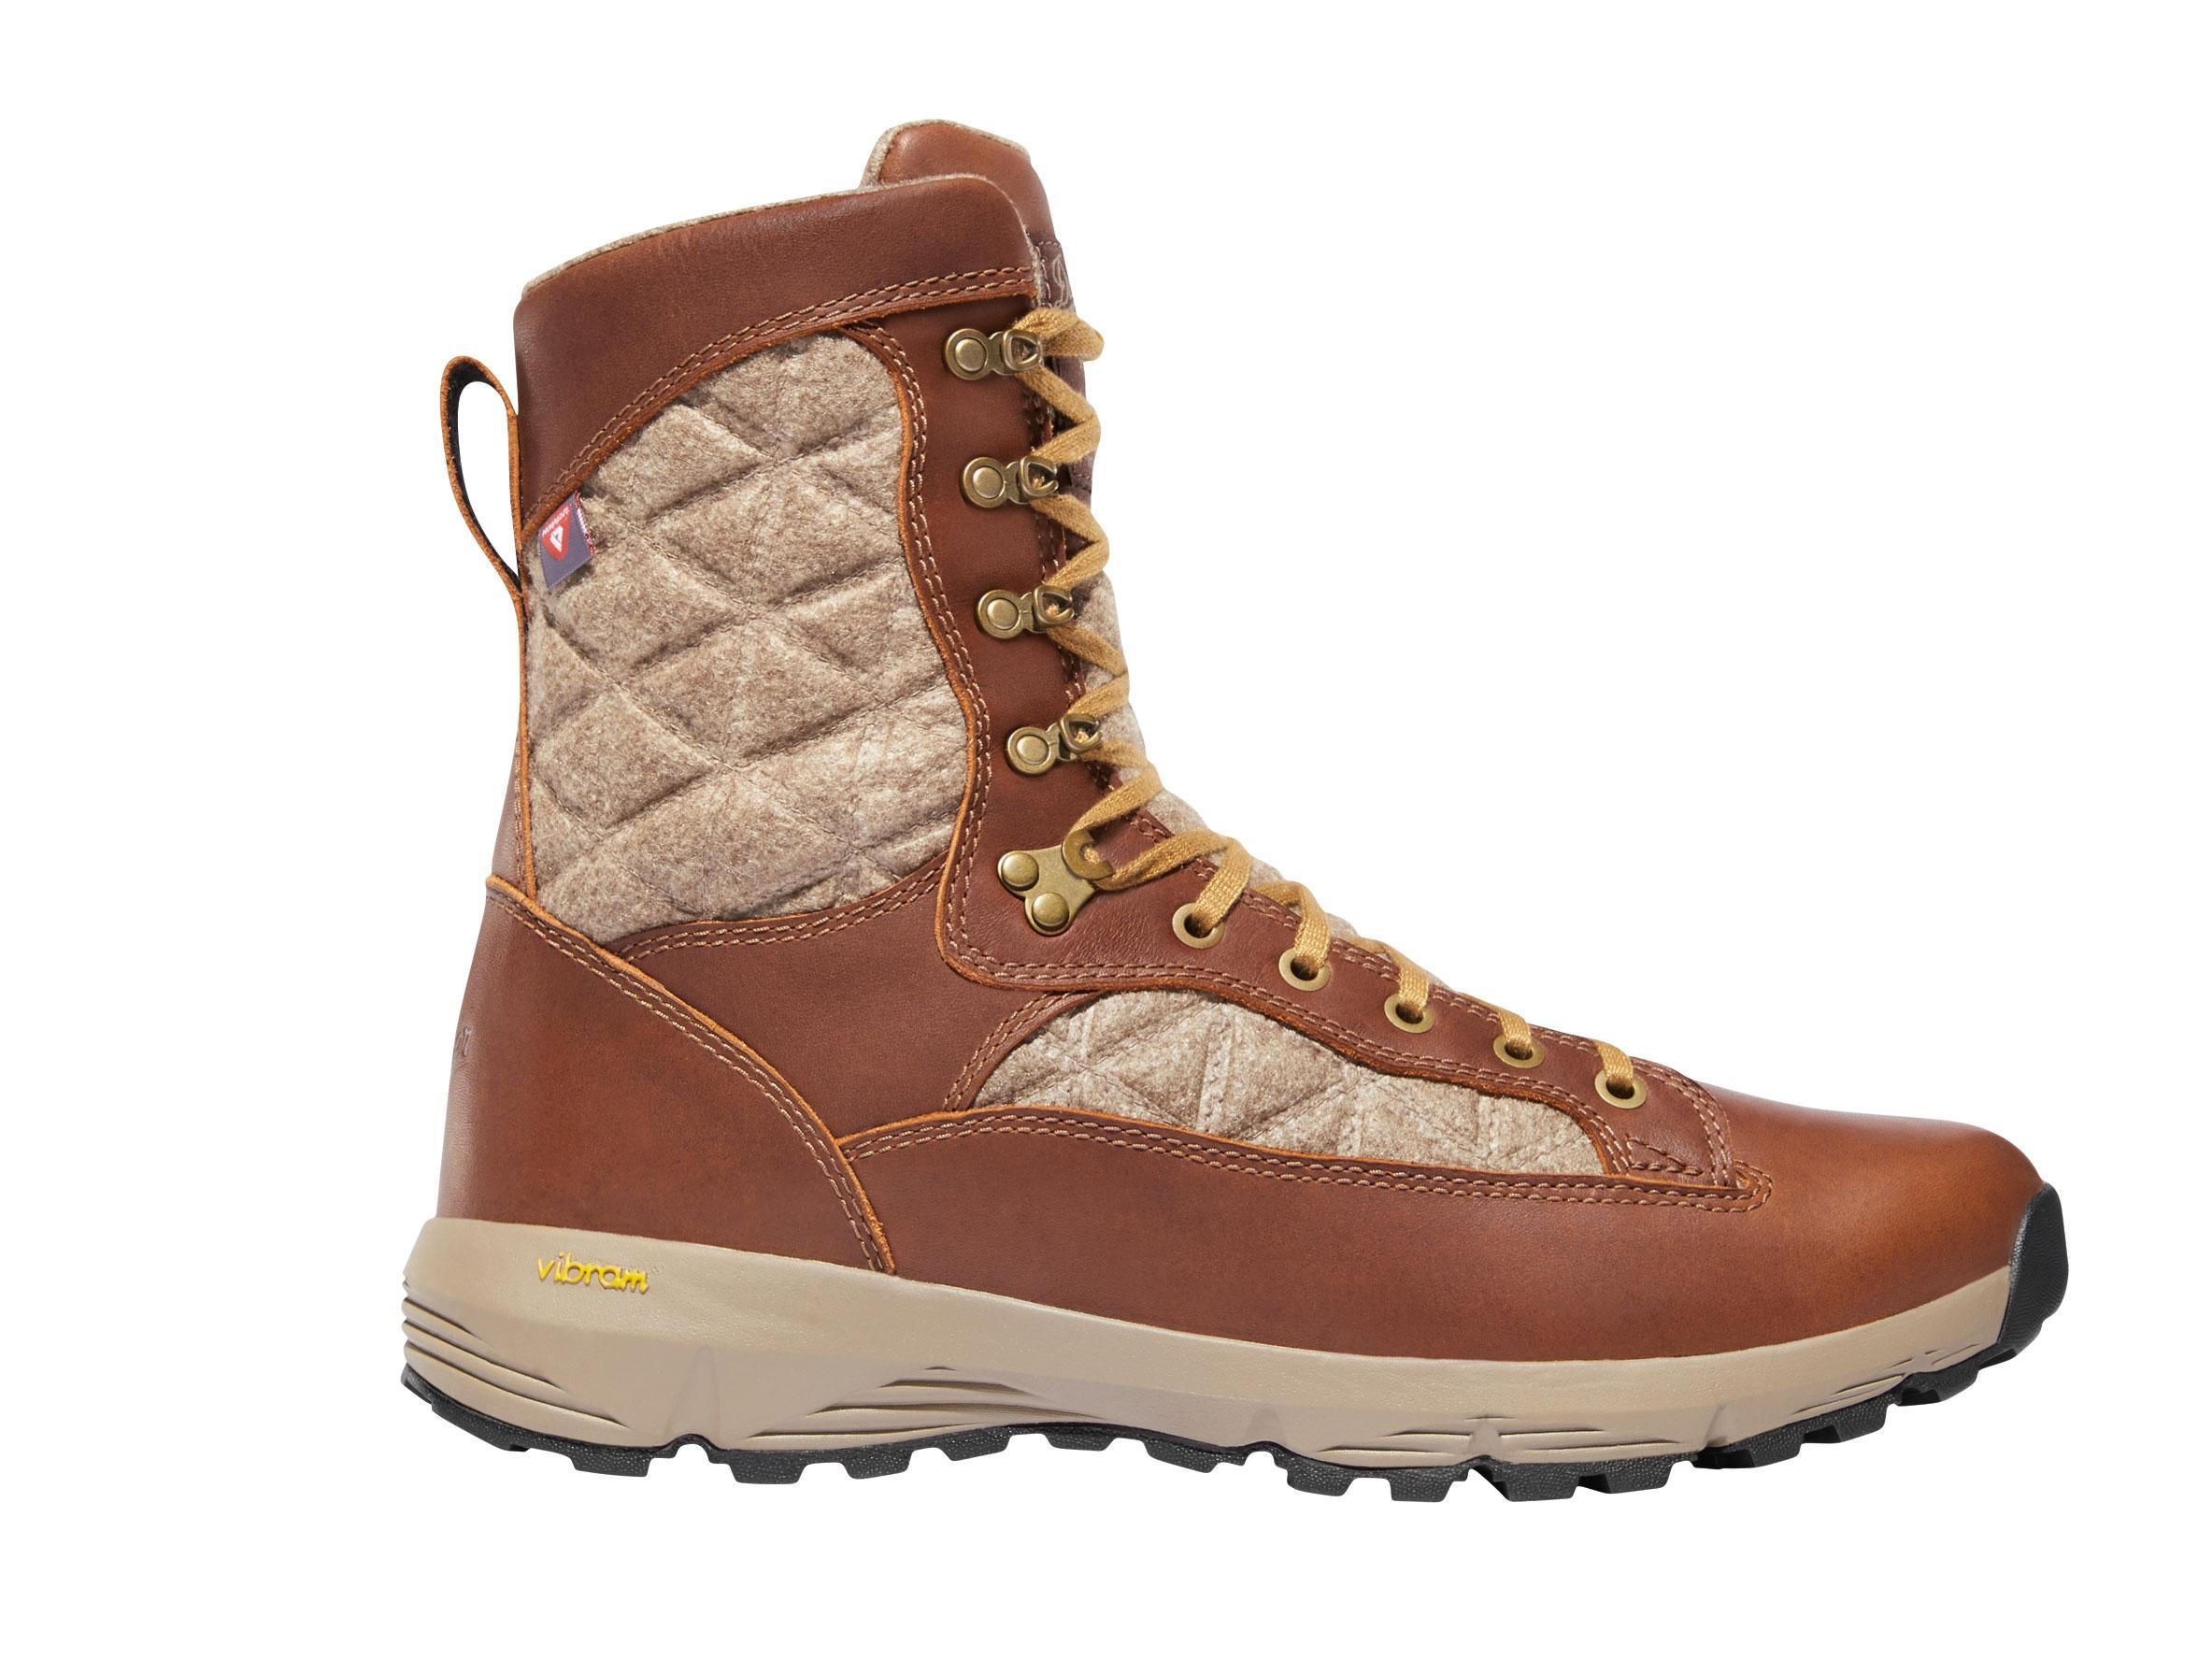 b33a55fb6c2 10 best snow boots | The Independent